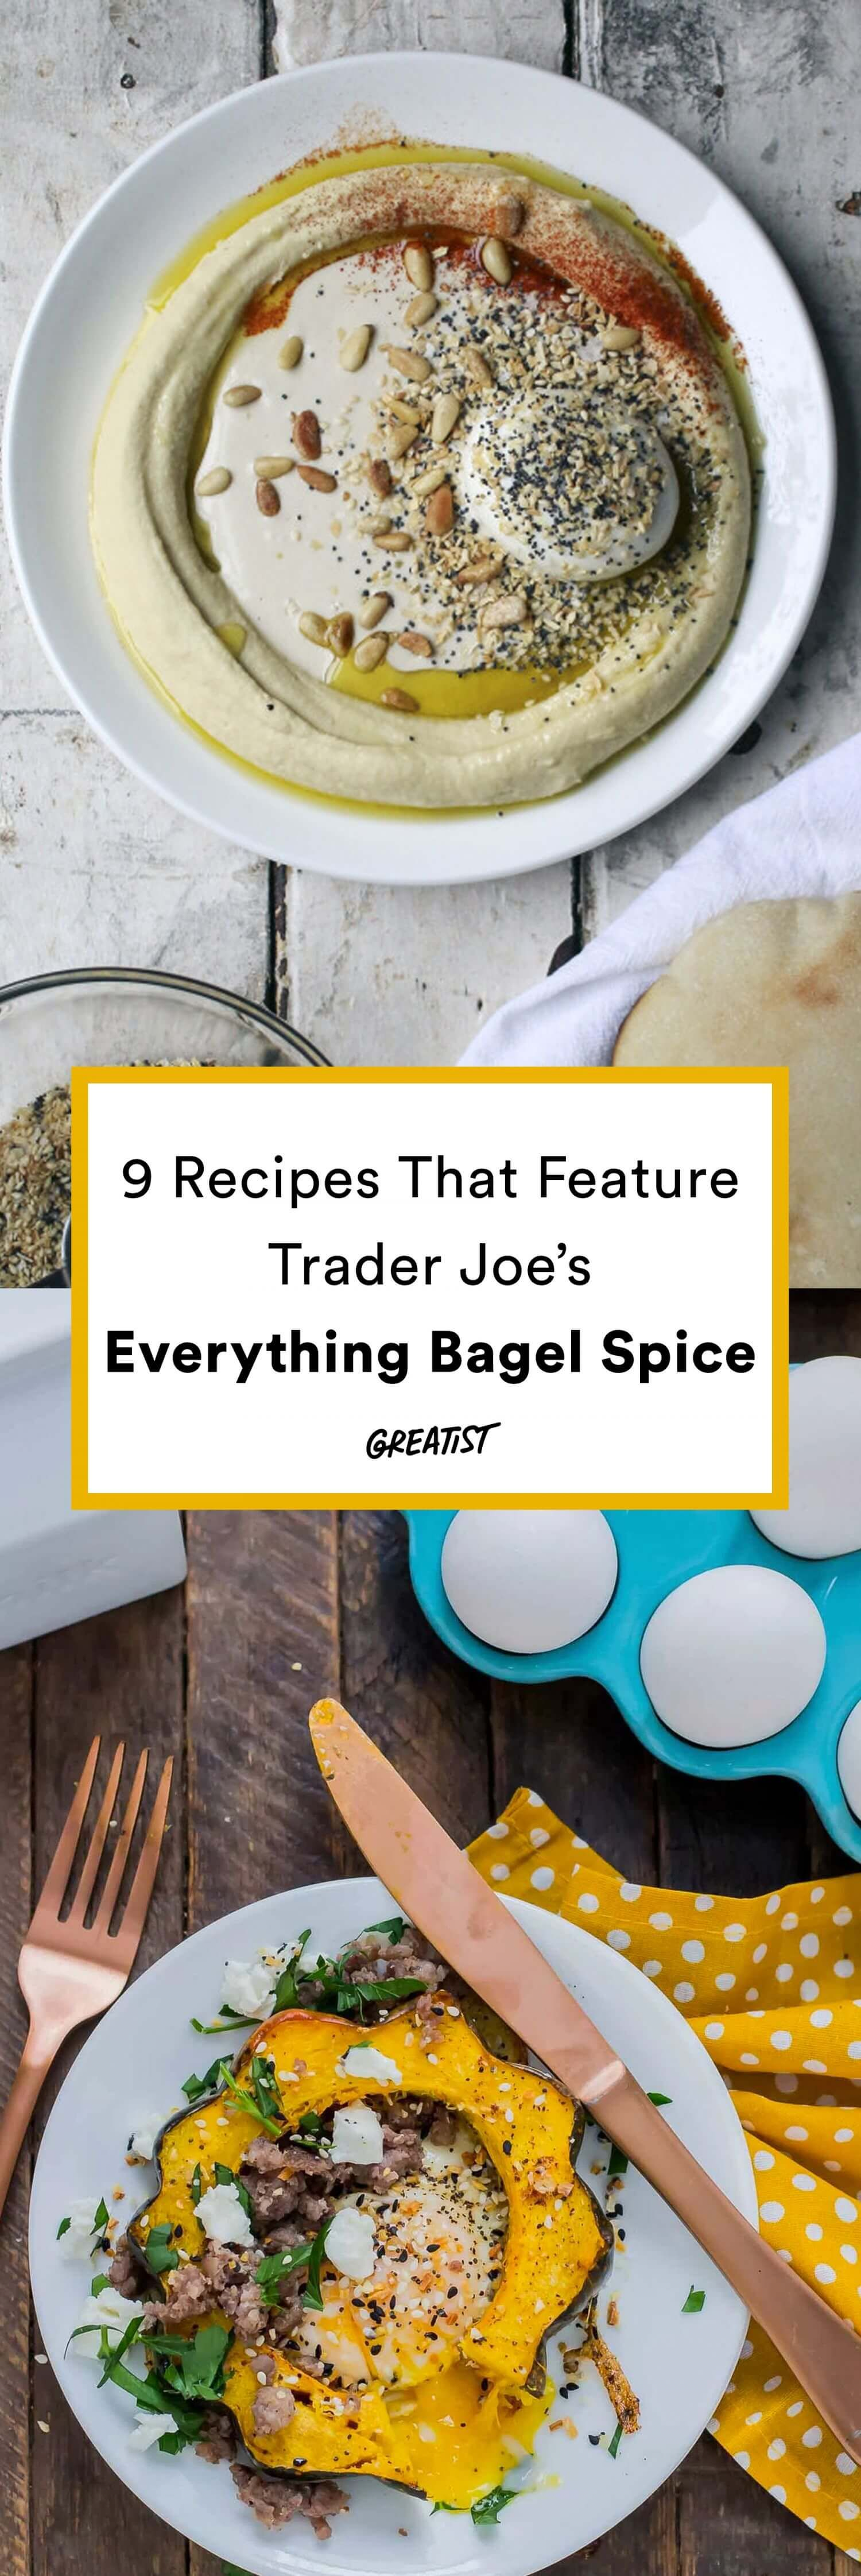 9 Ways to Use Everything Bagel Seasoning in Every Meal